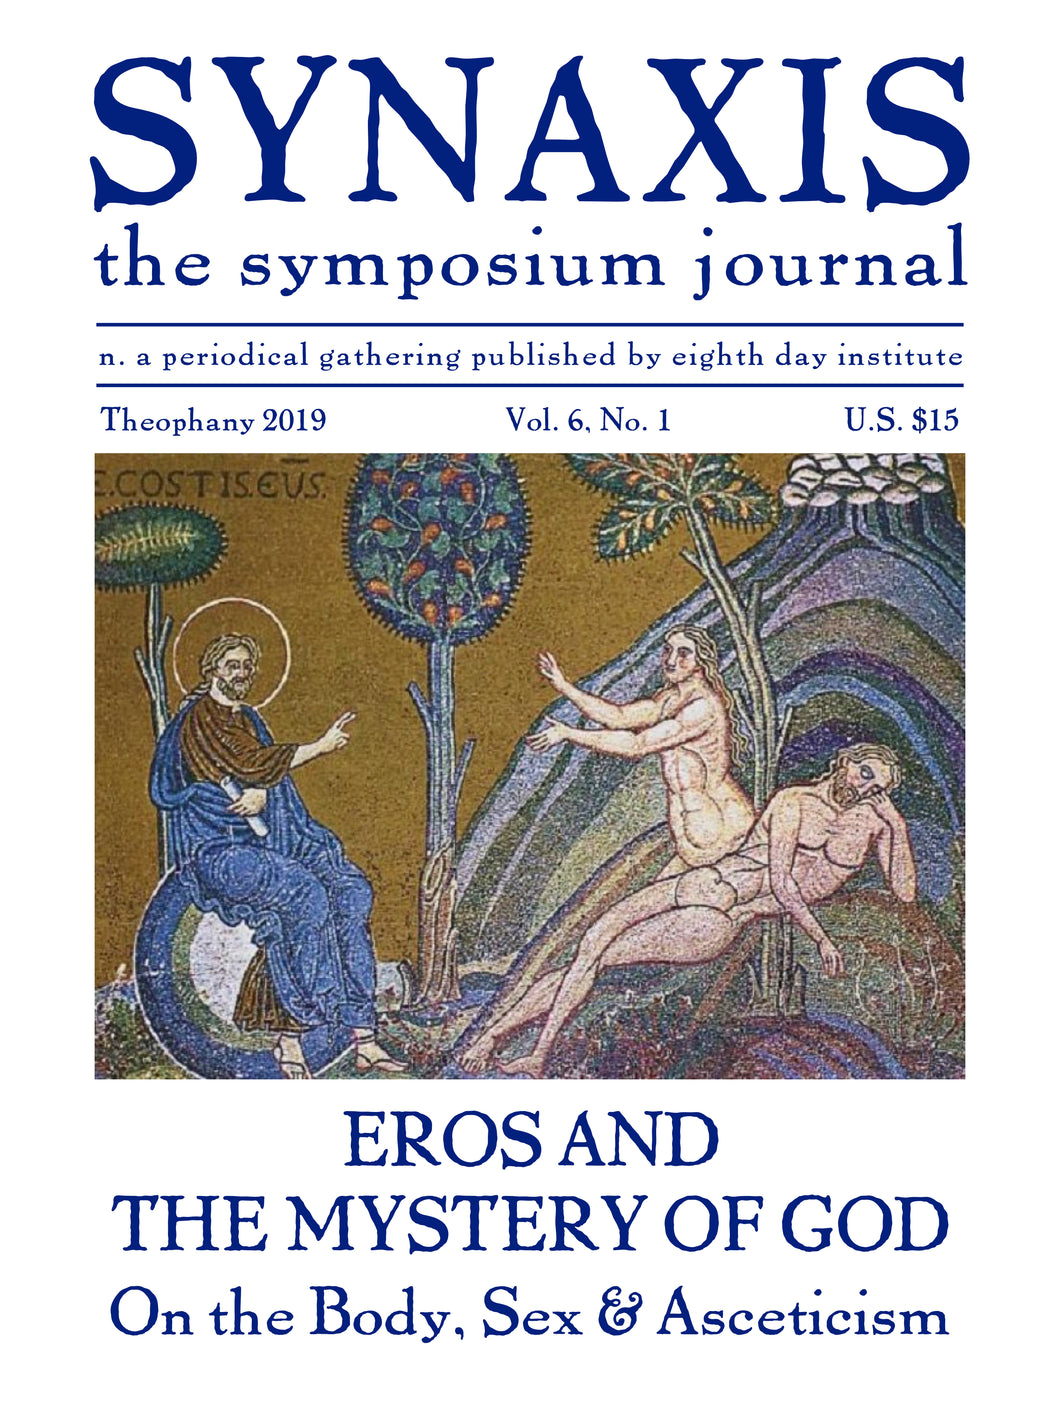 Synaxis 6.1: The Symposium Journal